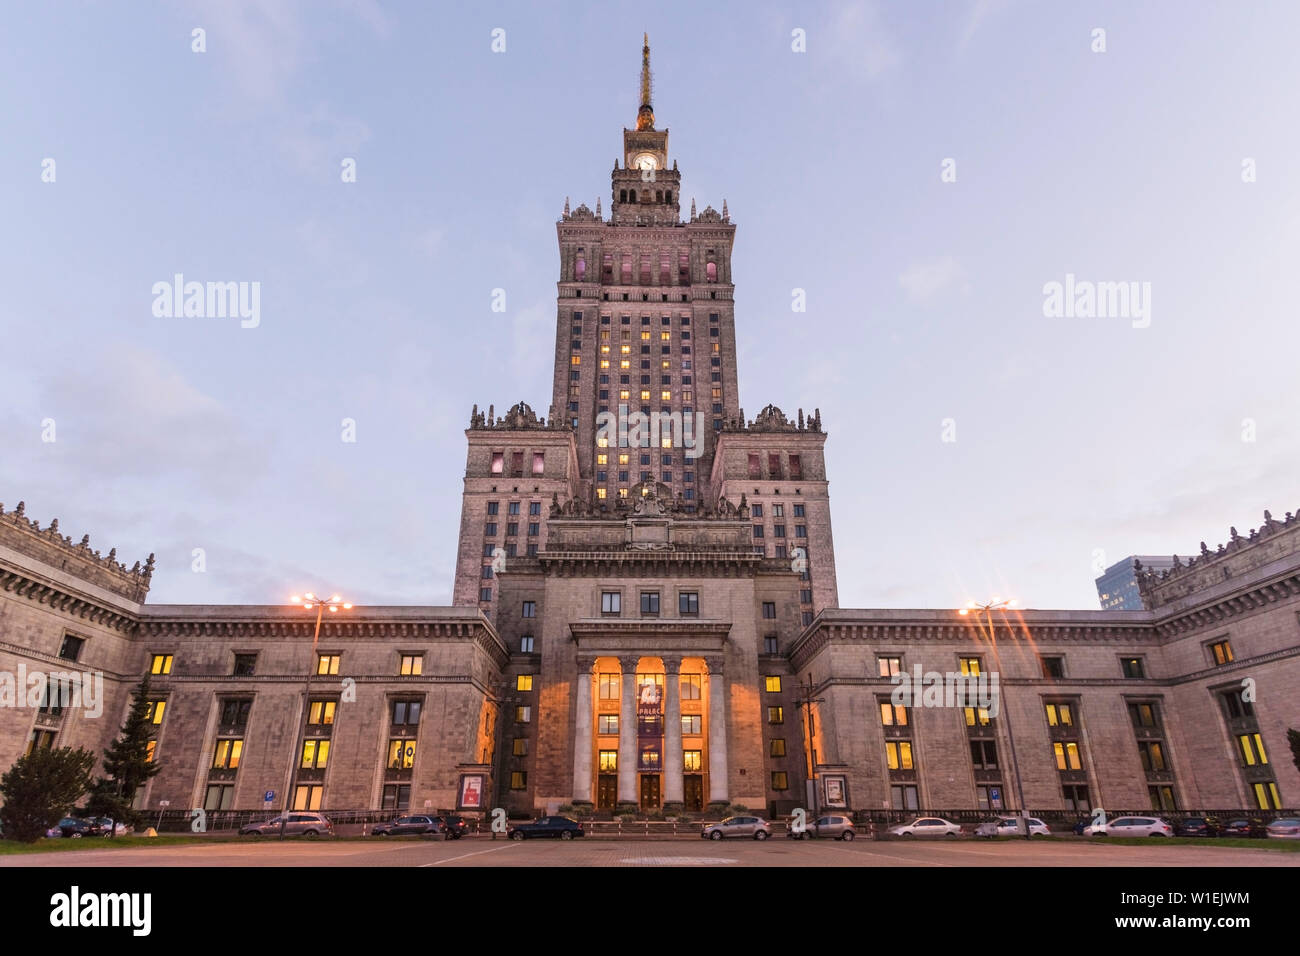 Palace of Culture and Science (Palac Kultury i Nauki), built in the 1950s, Warsaw, Poland, Europe Stock Photo